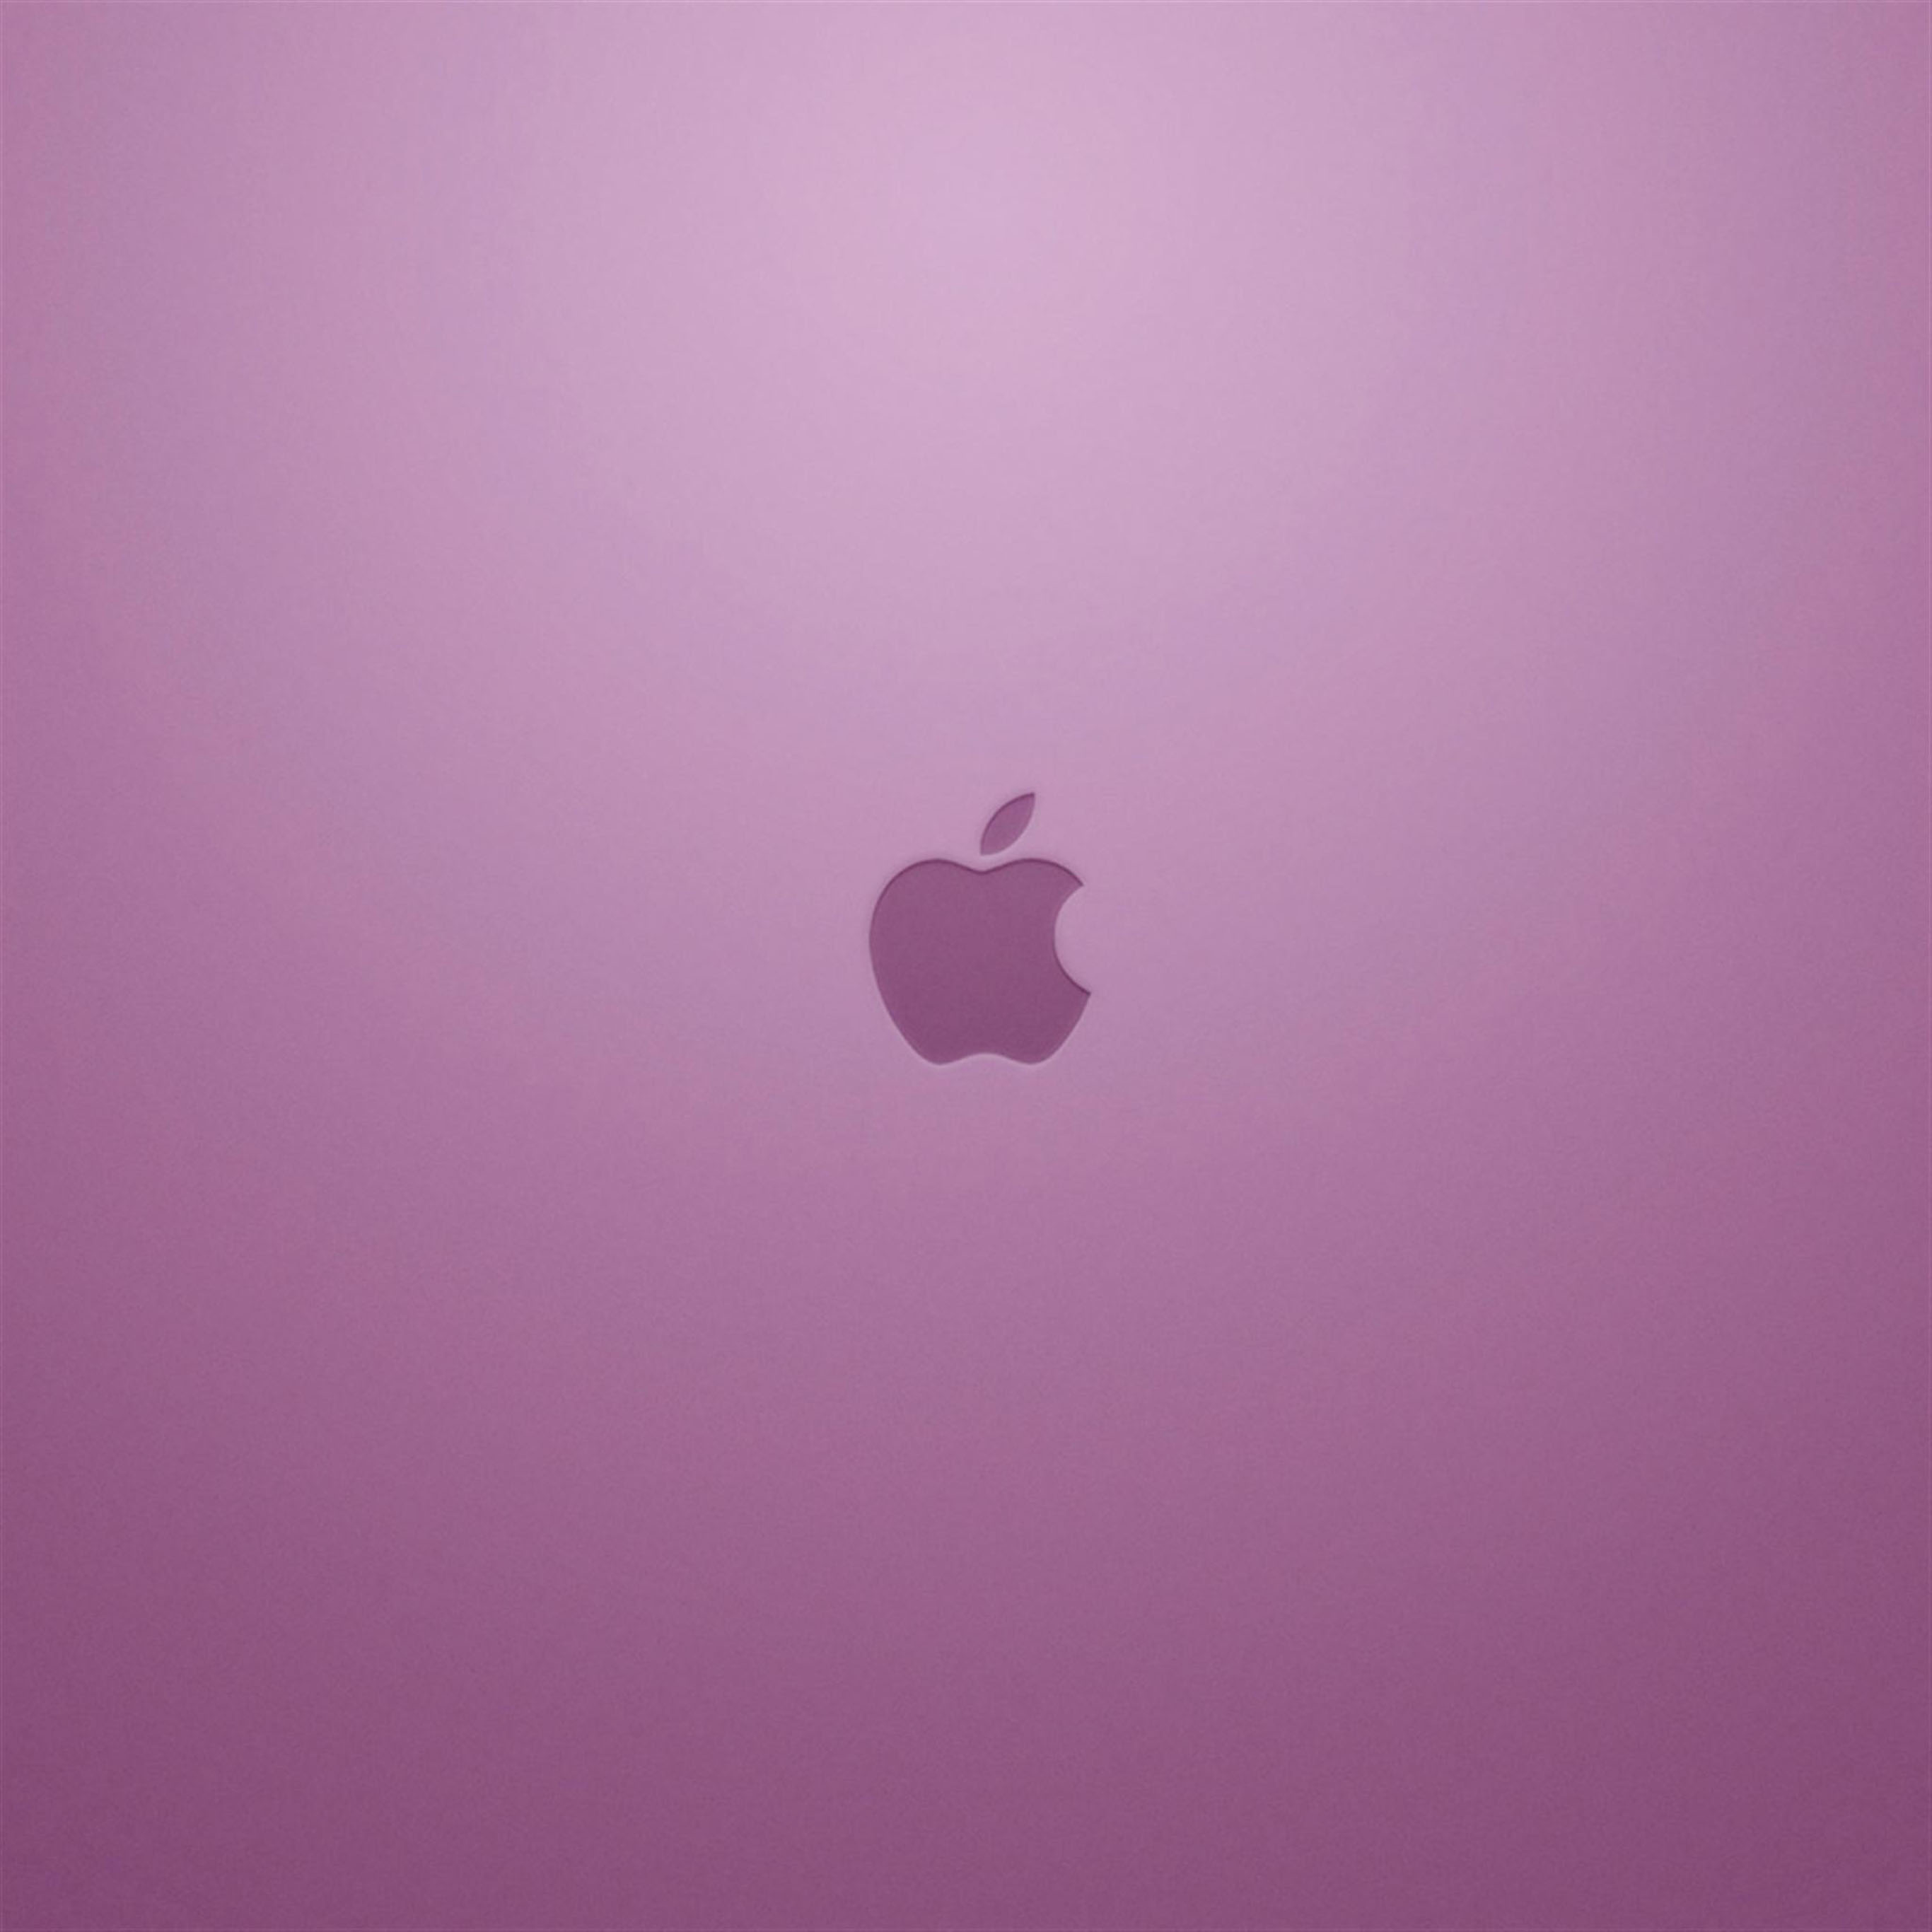 Wallpaper Weekends In The Pink Pink Ipad Wallpapers